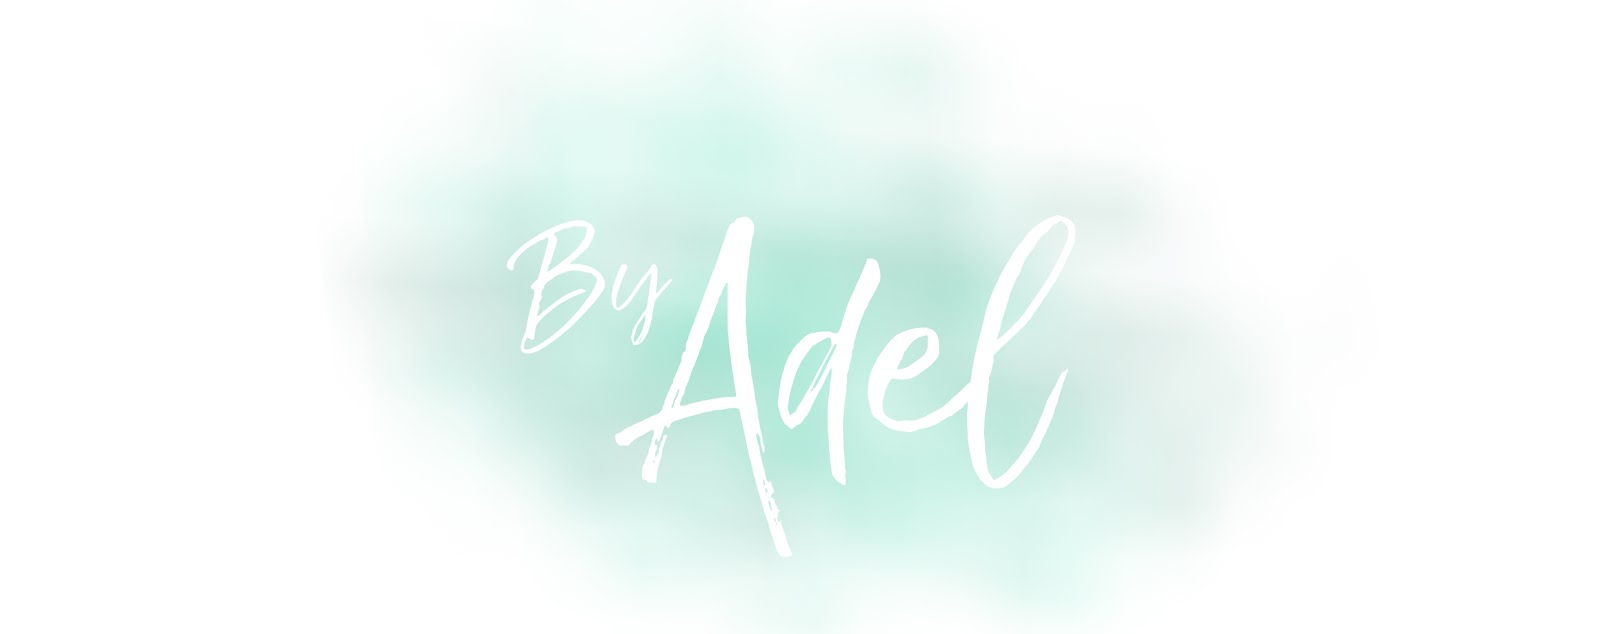 By Adel